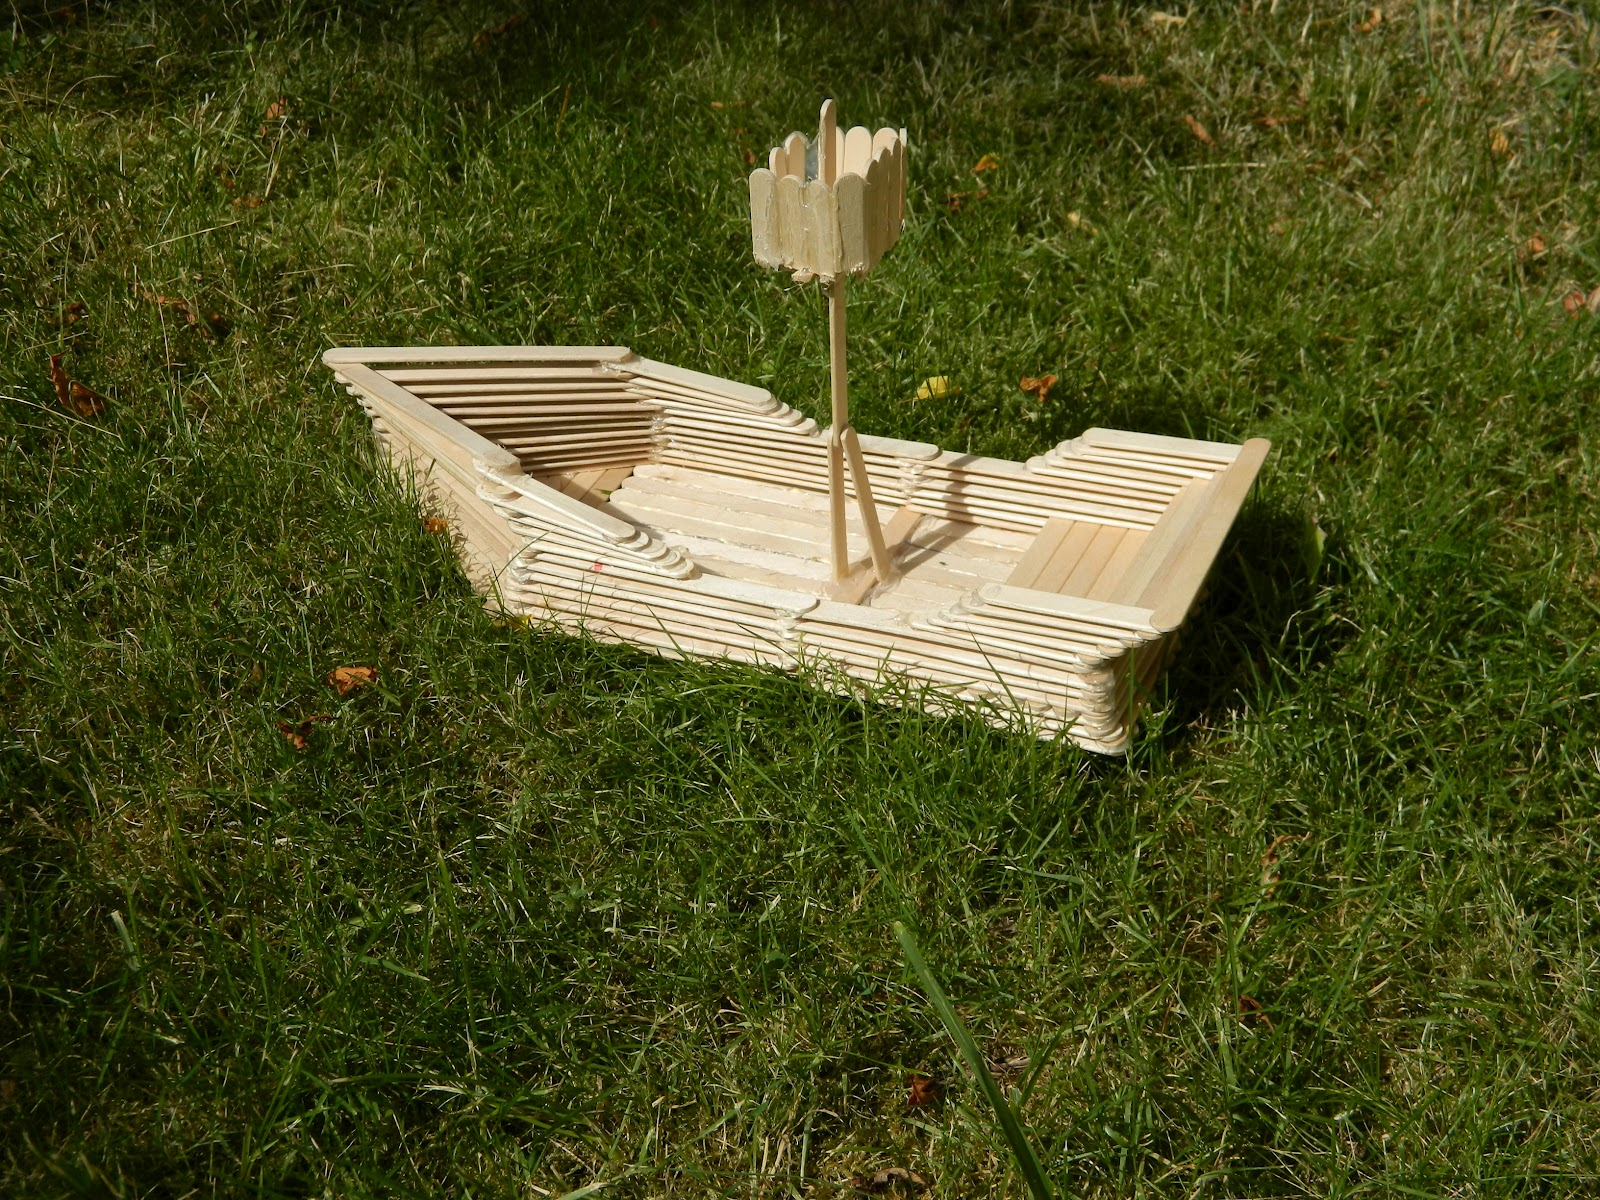 One Of A Kind Artz: The Popsicle Stick Boat